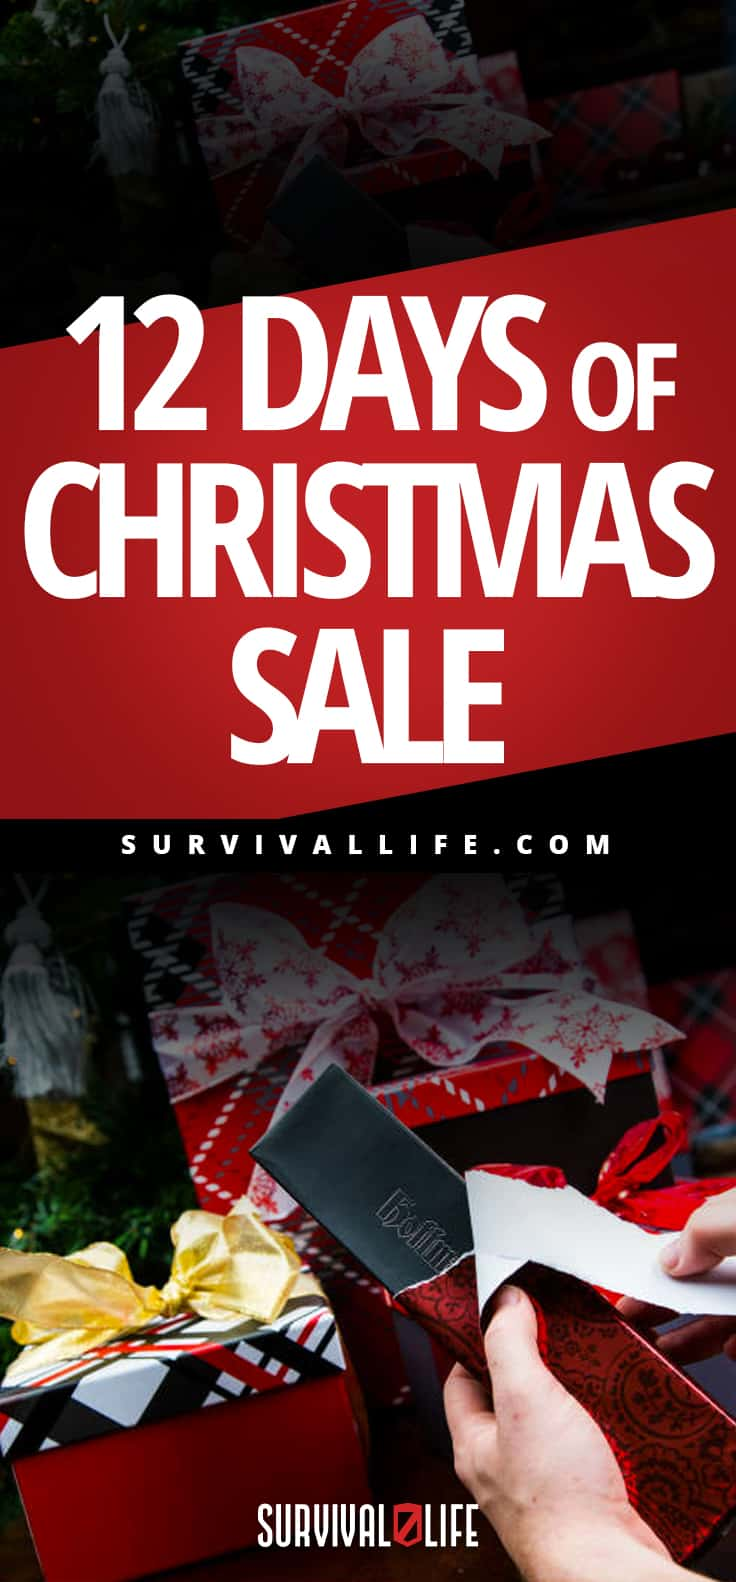 [Exclusive] Survival Life: 12 Days Of Christmas Sale